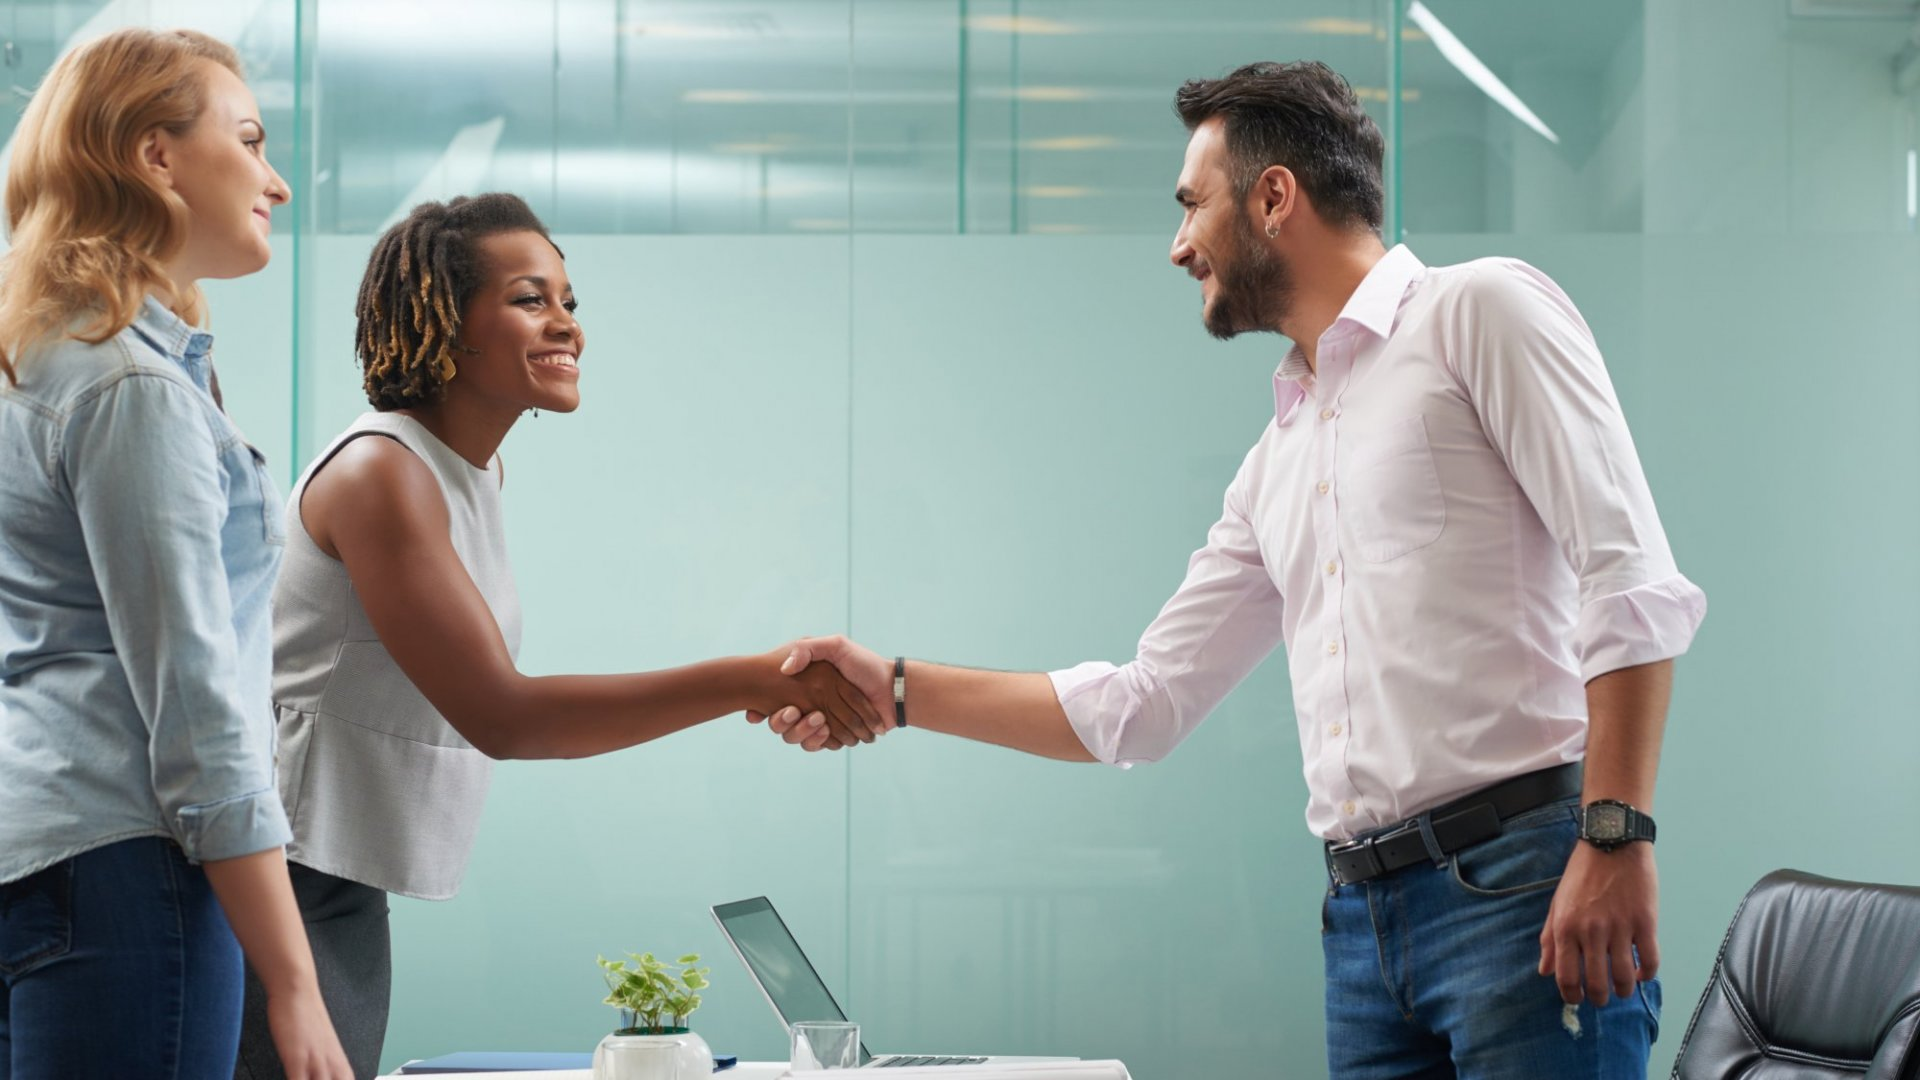 Saying This in an Interview Takes Guts, But Could Sway the Hiring Manager in Your Favor